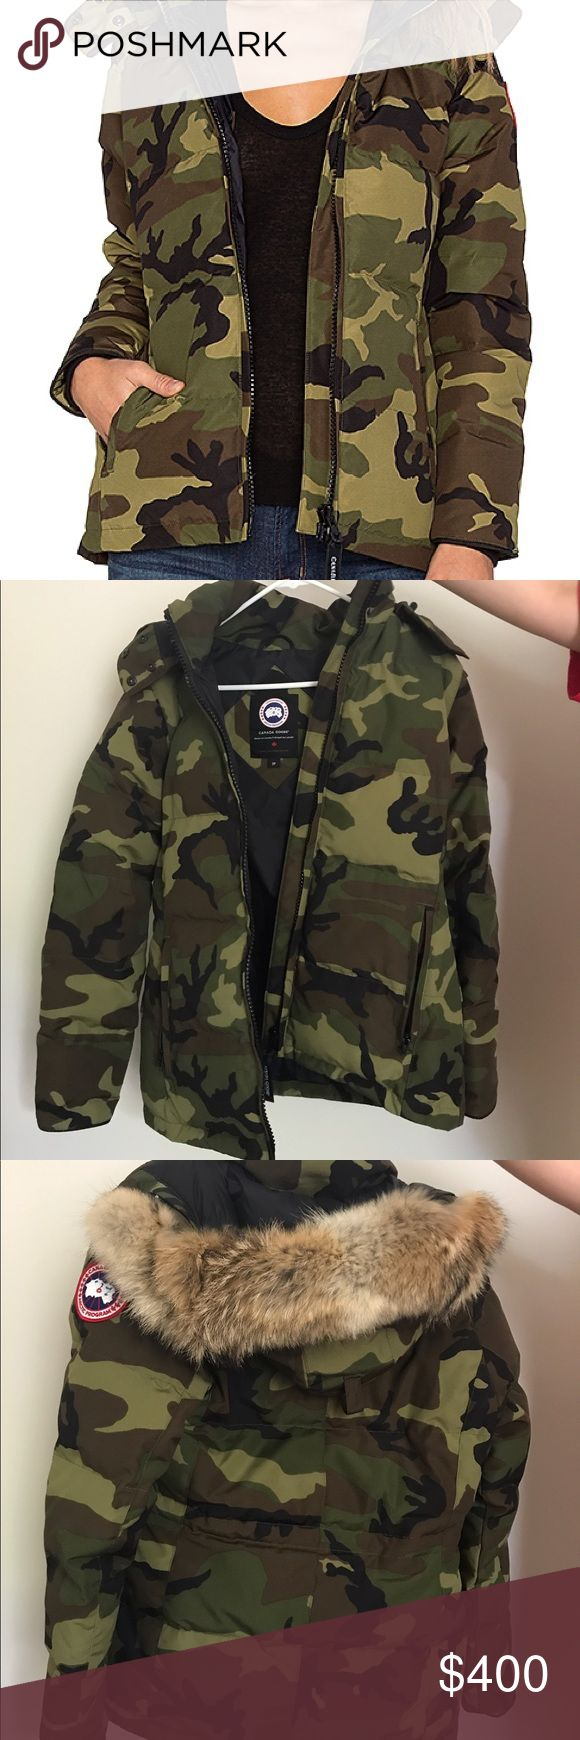 Canada Goose Camo Chelsea parka never worn. a friend of mine was sent an extra jacket in the mail and i am selling it. Perfect condition. Retail price 695.00. Bought from nordstrom.com Canada Goose Jackets & Coats